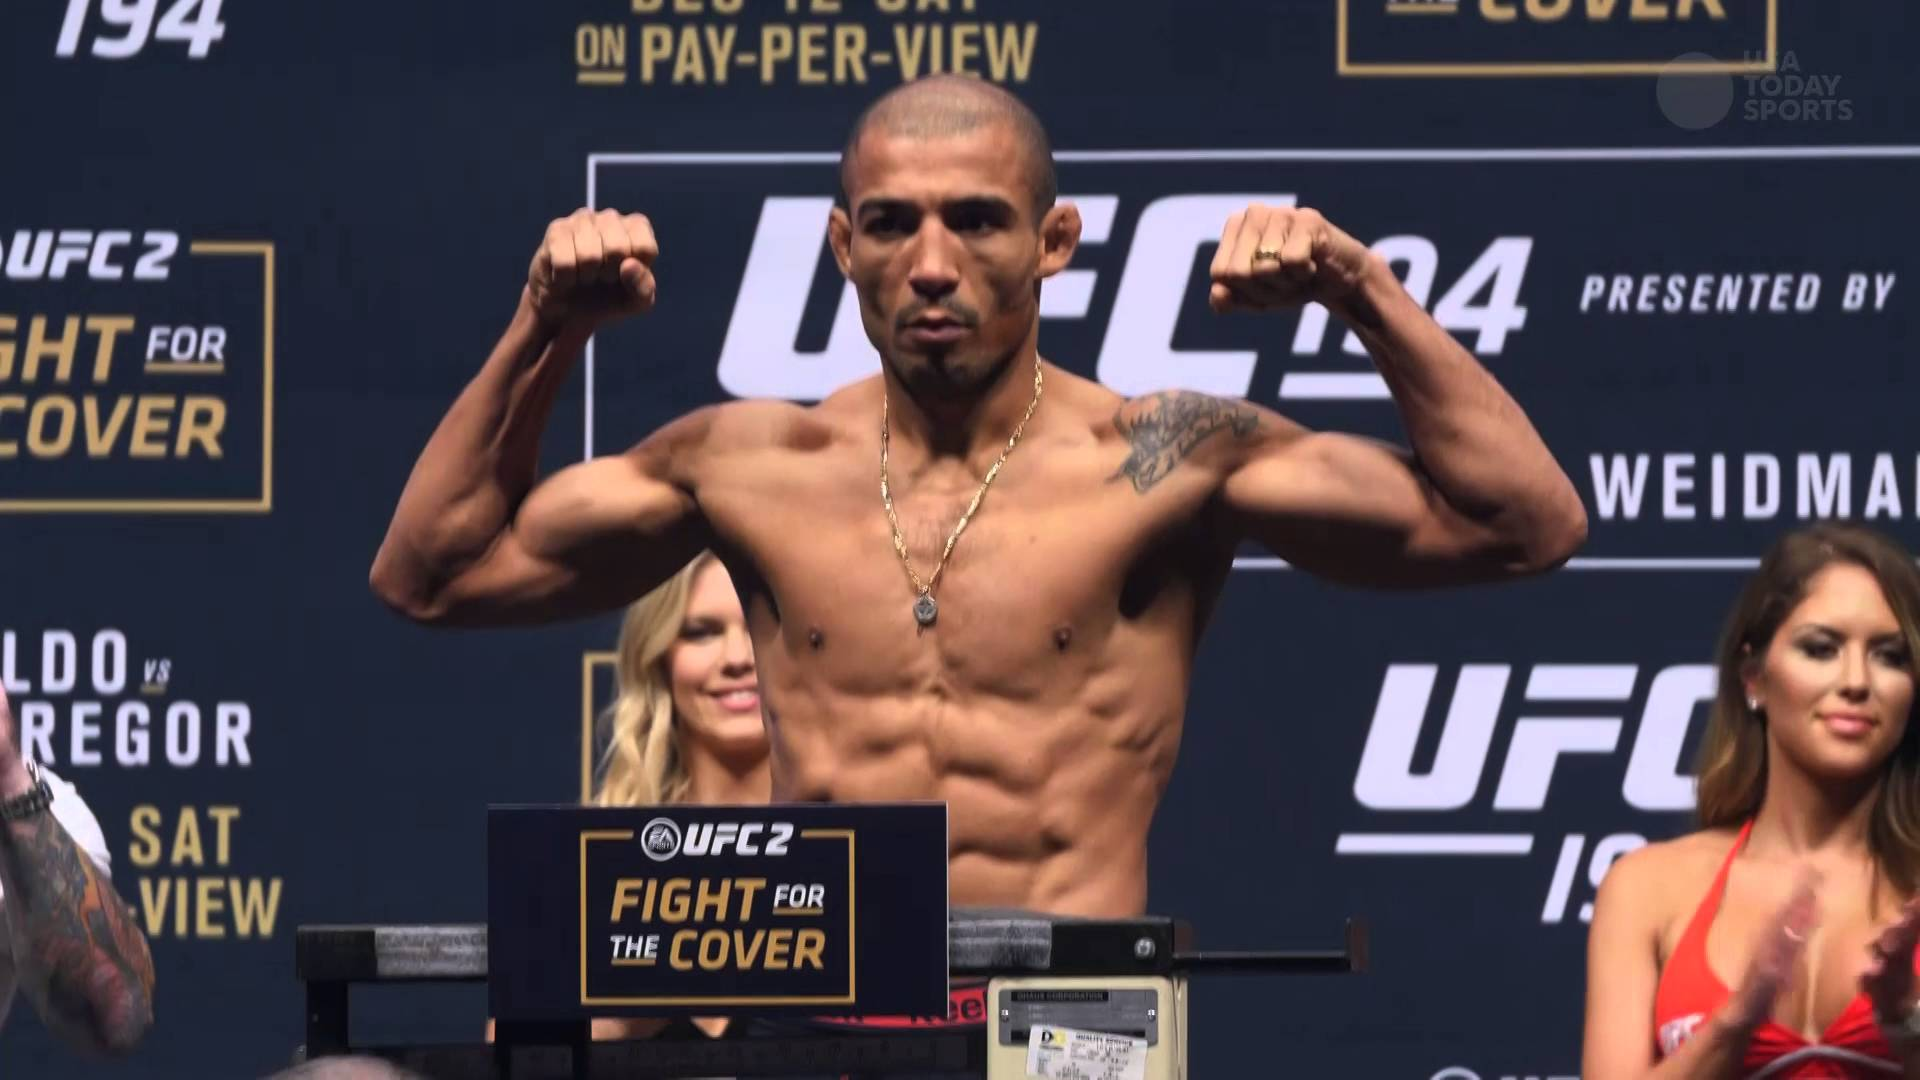 UFC 212 Official Weigh-In - Did they make it? -